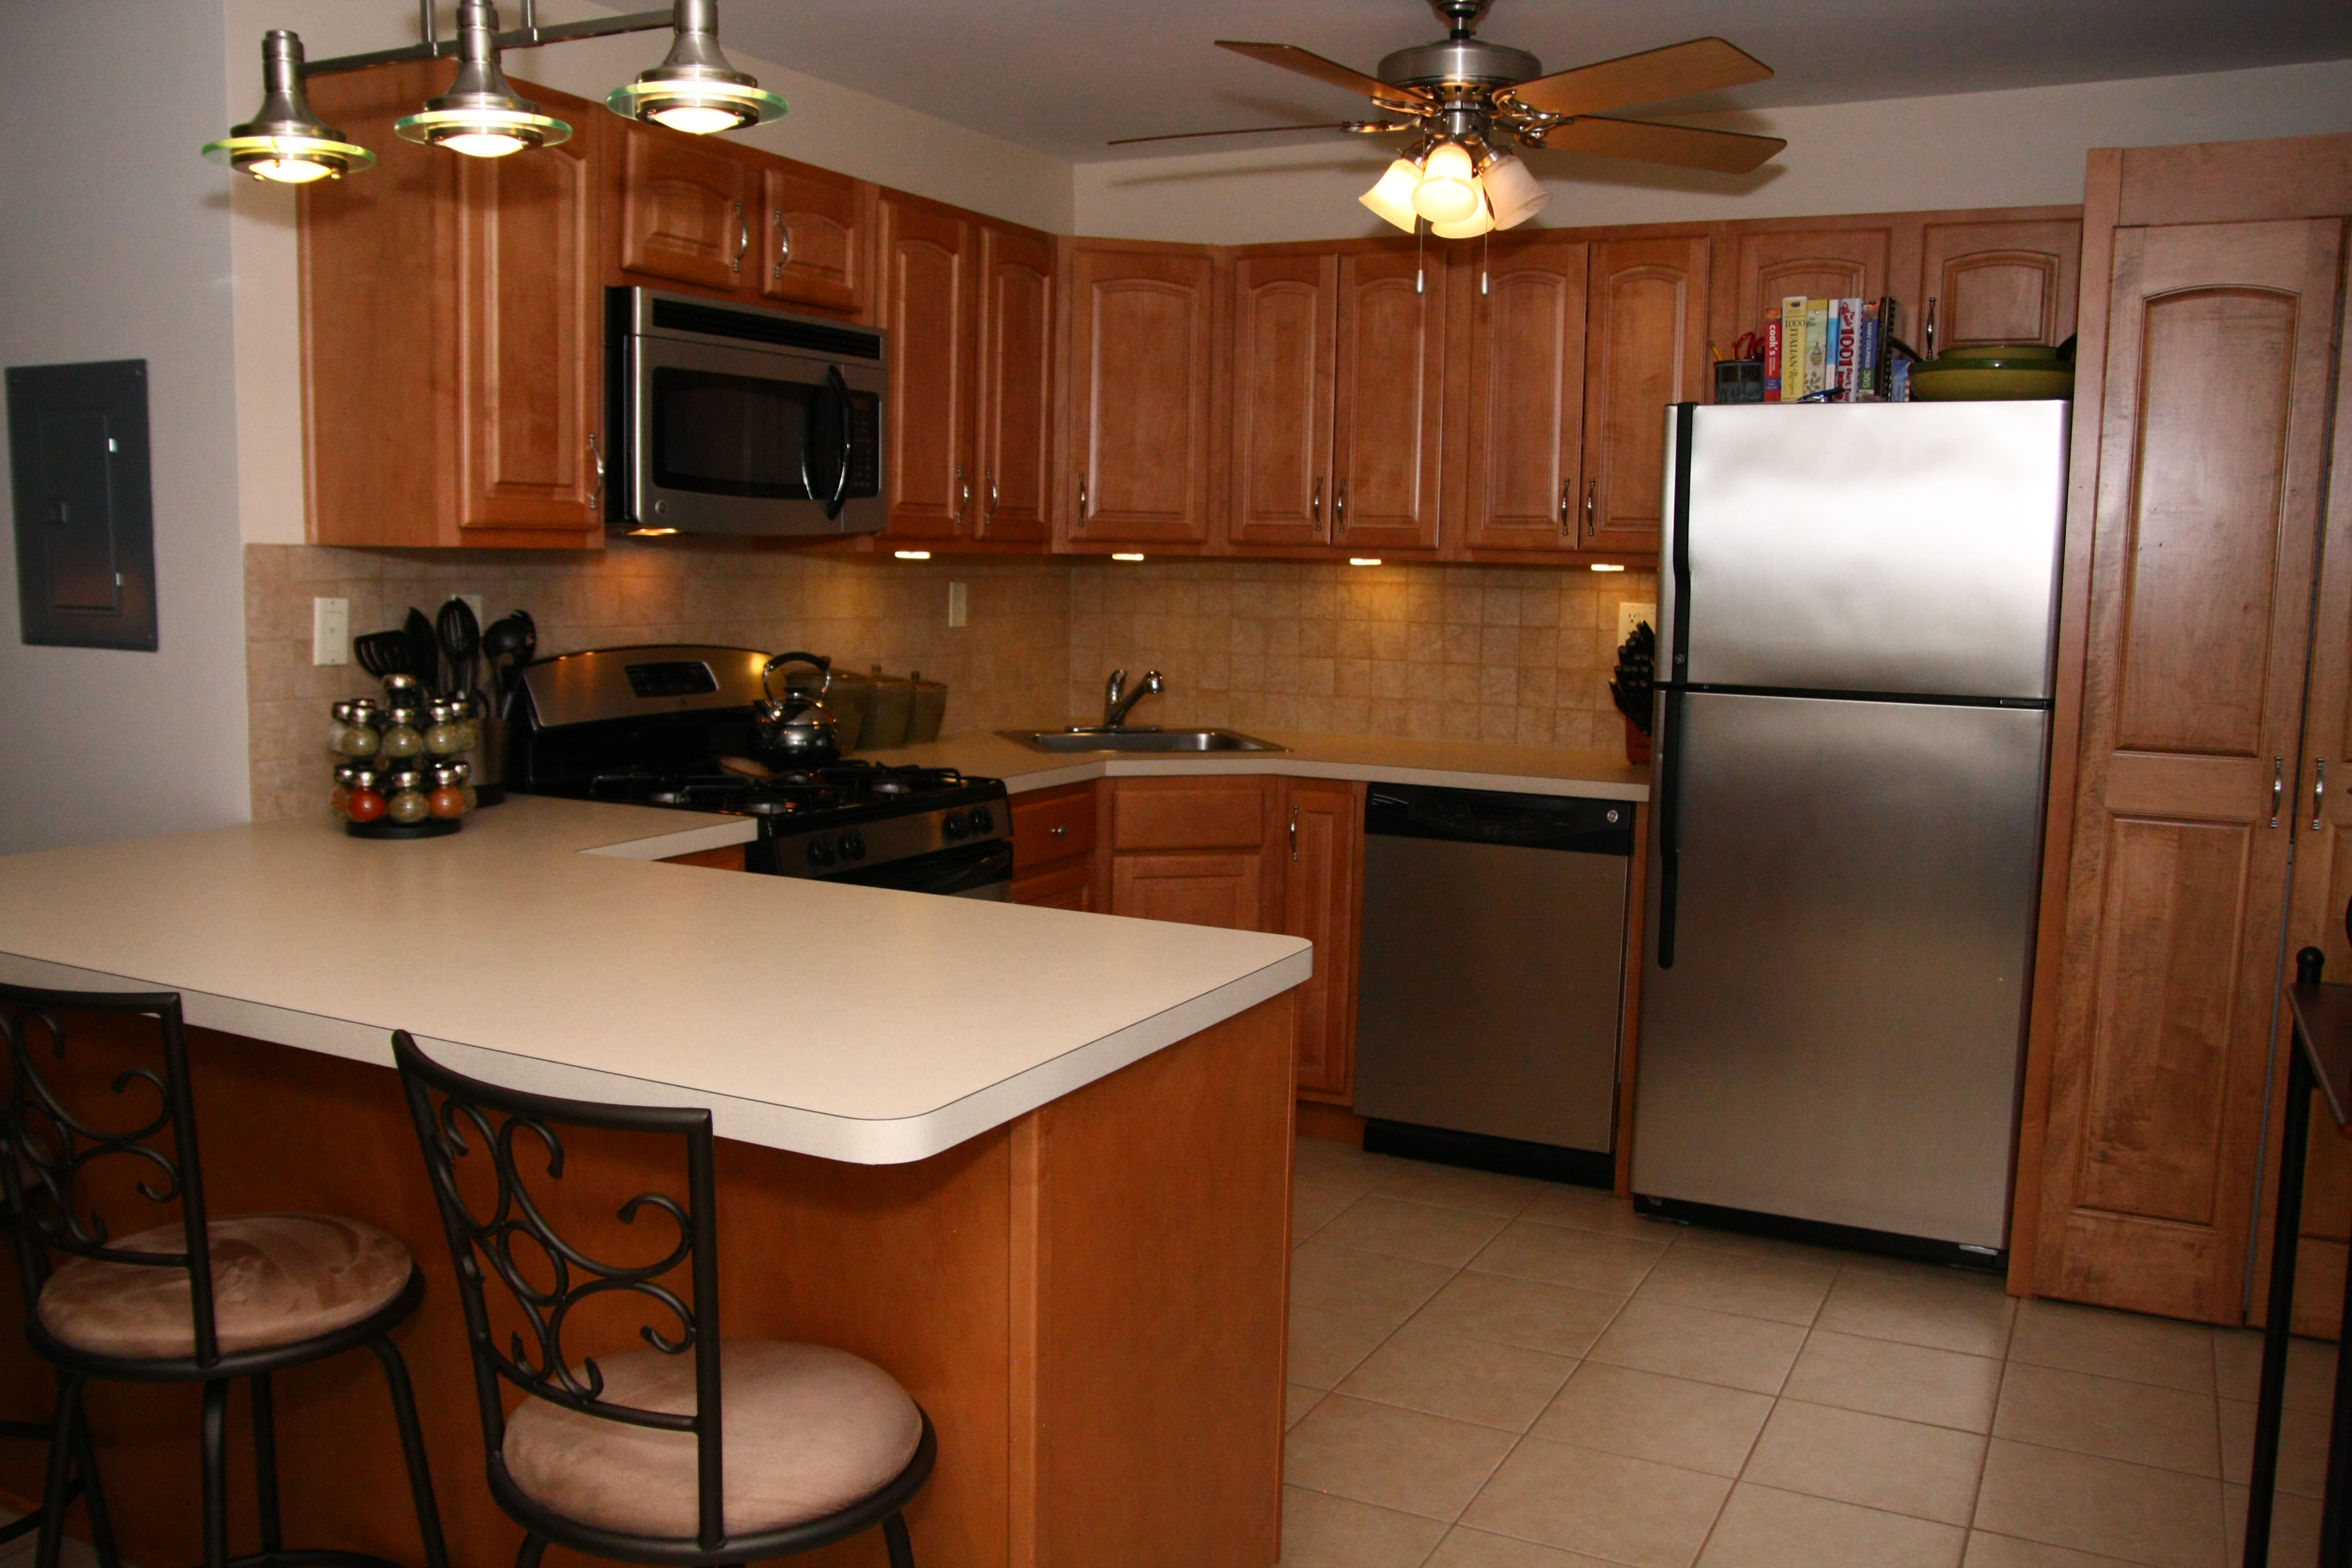 Kitchen at Center Grove Village